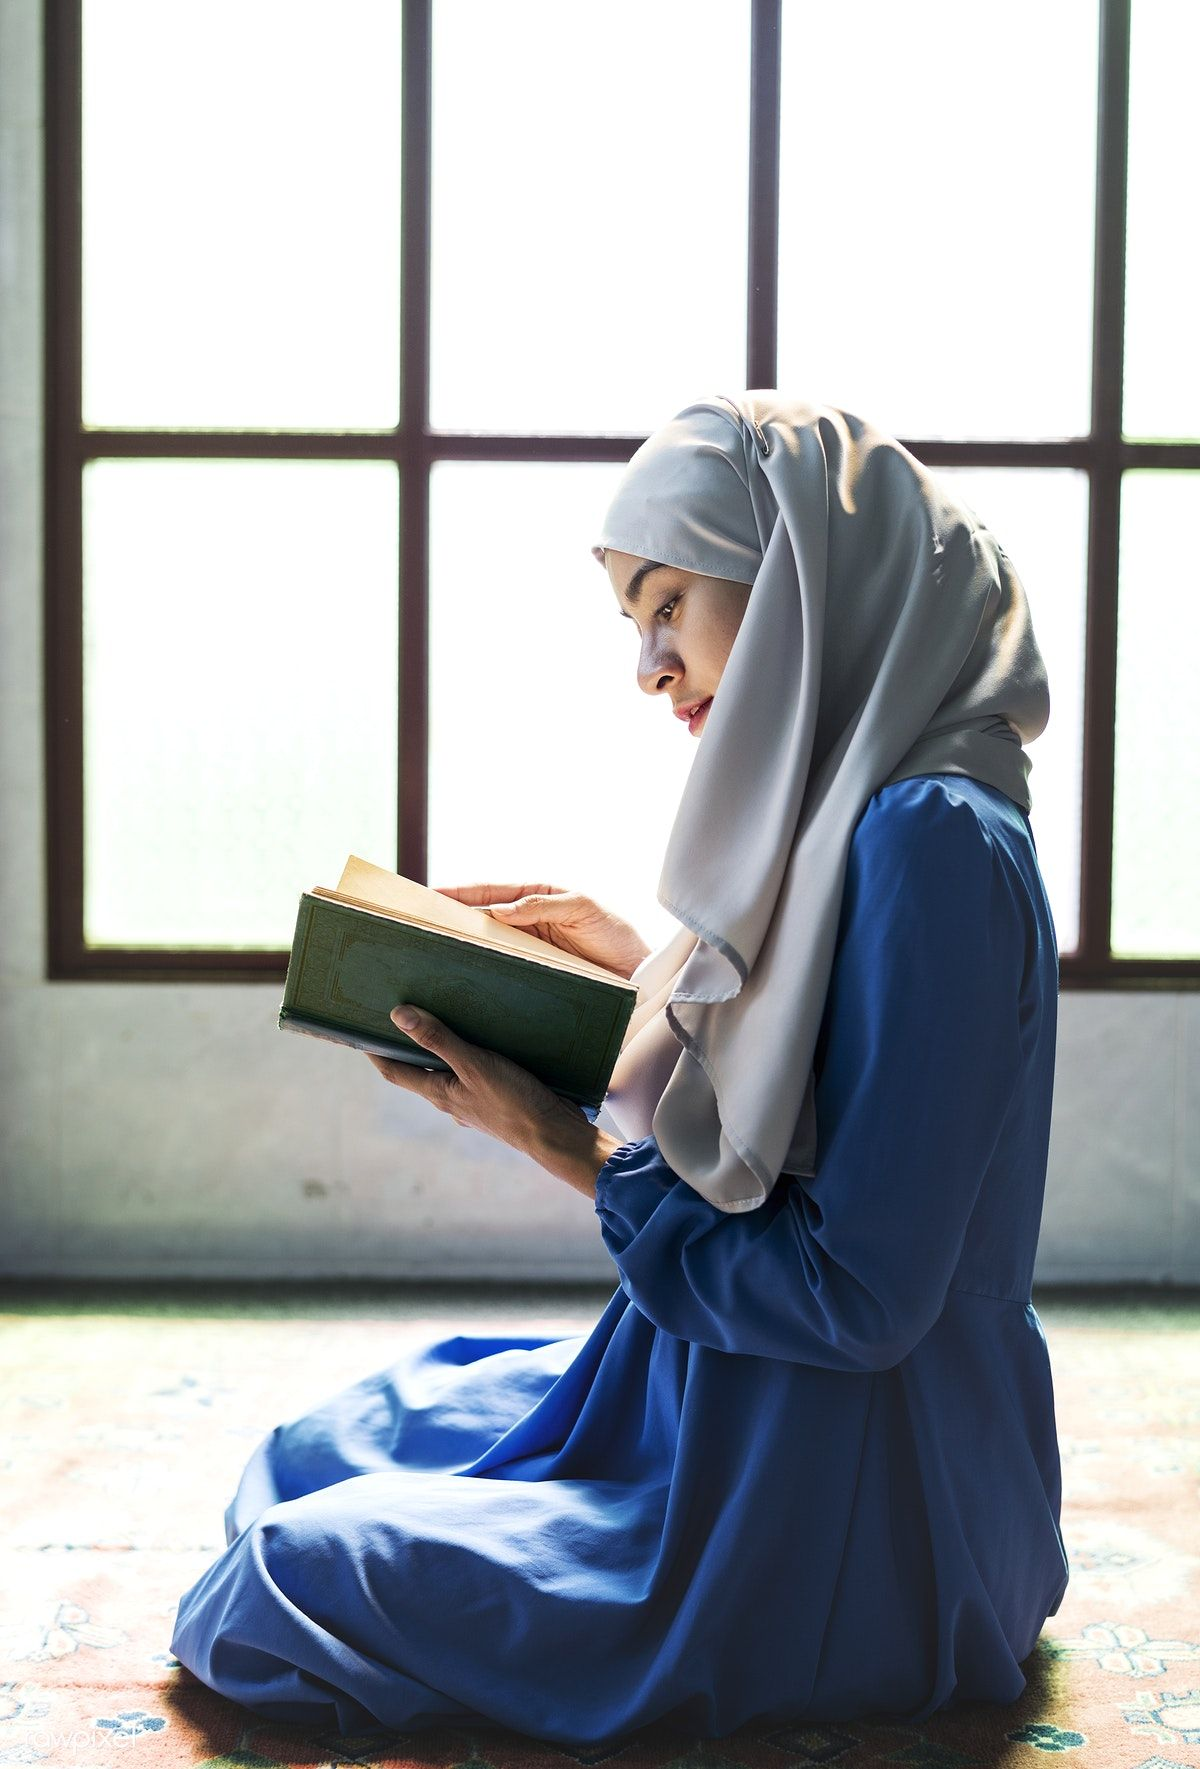 Download premium photo of Muslim woman reading from the